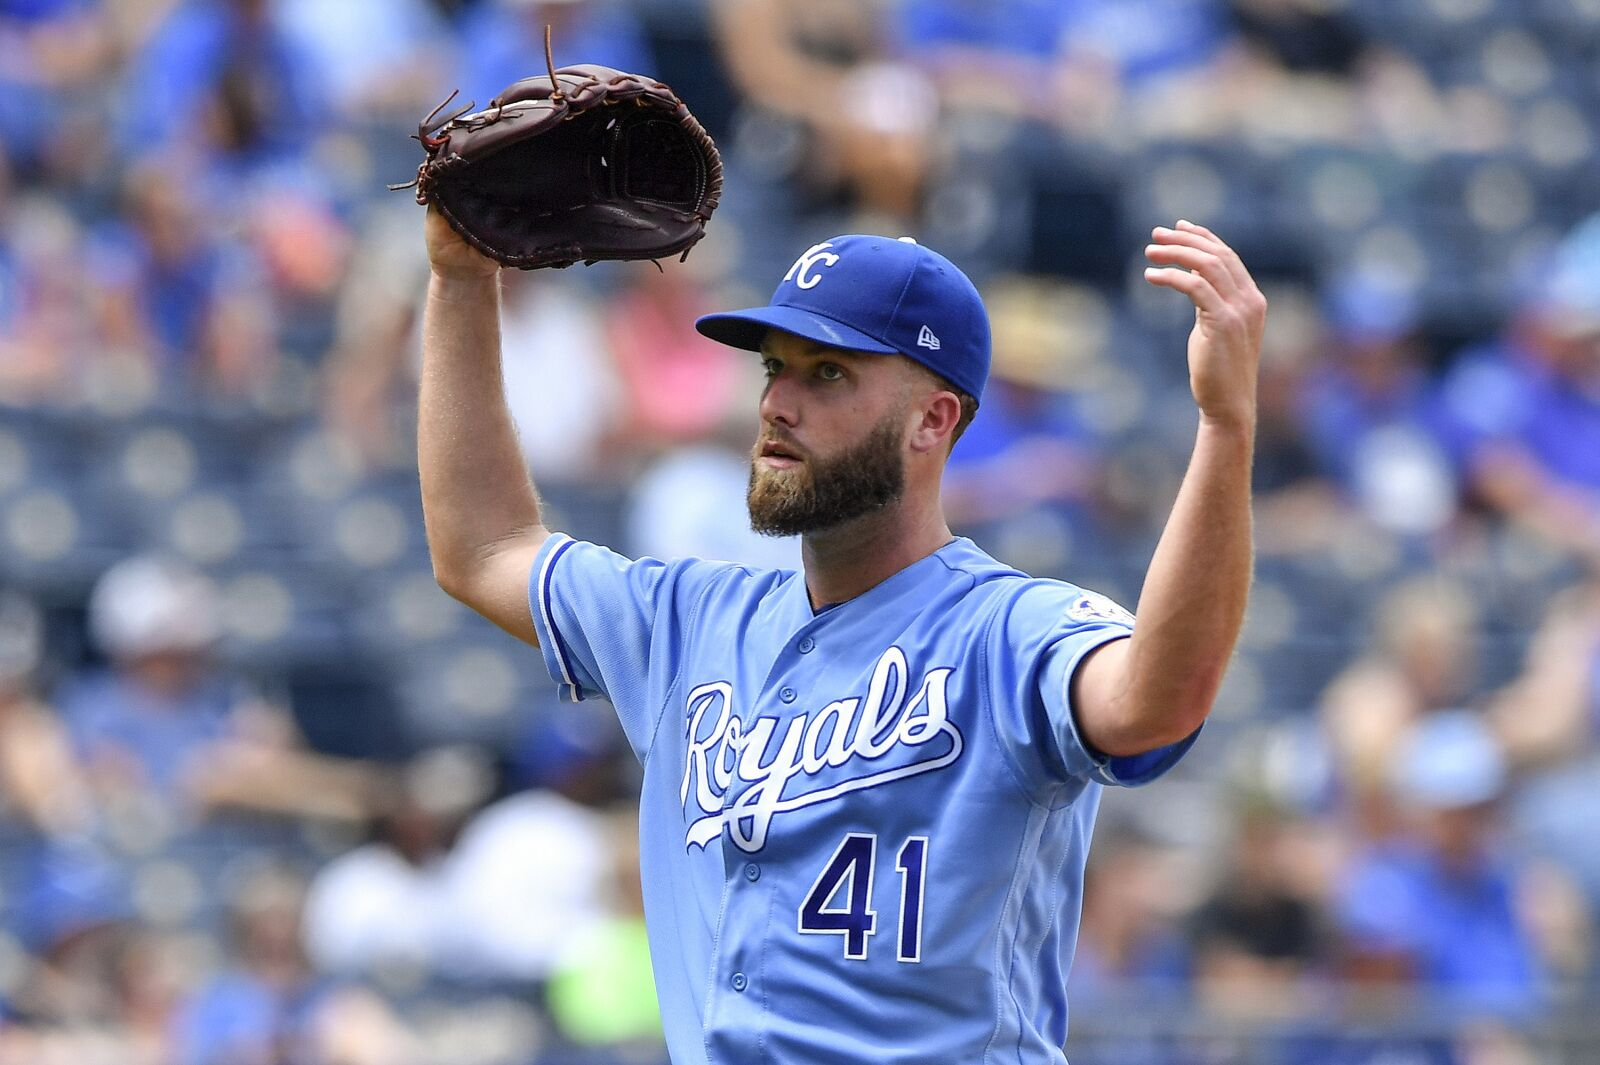 Kansas City Royals: Most disappointing players in 2018